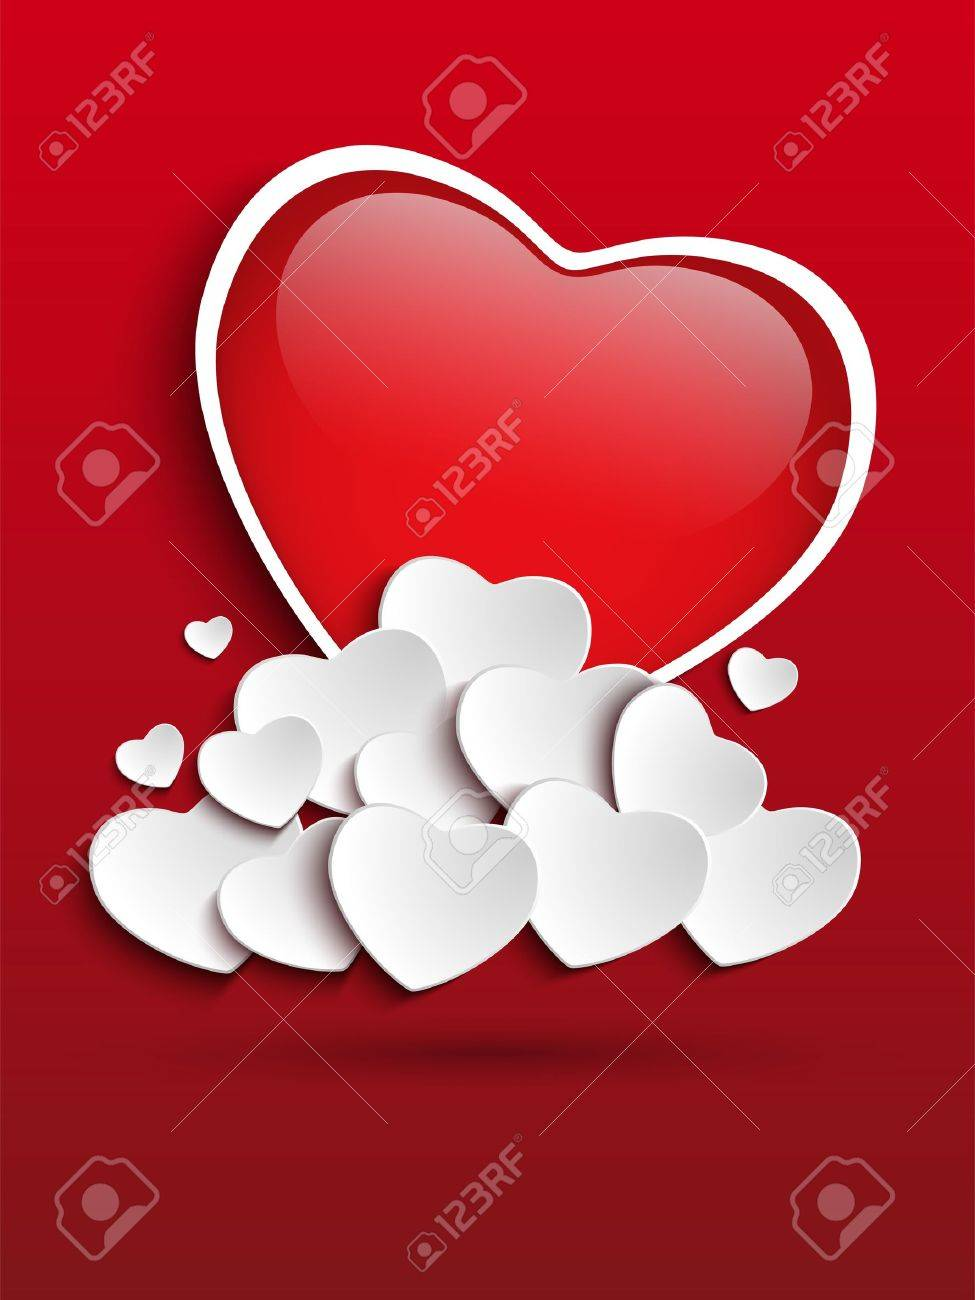 Vector - Valentines Day Heart Clouds Stock Vector - 17302918